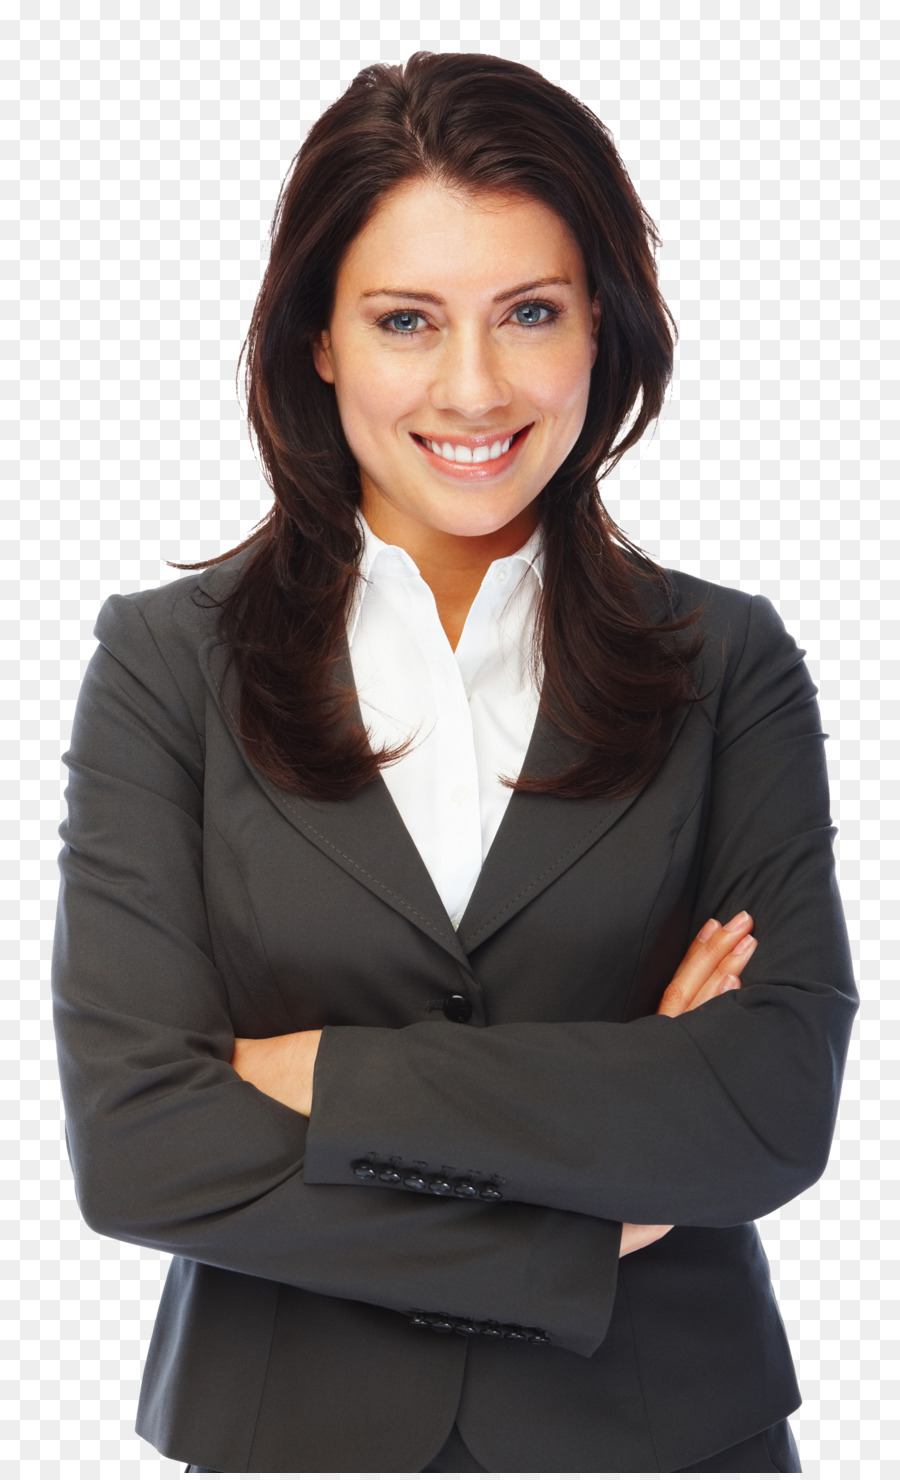 business woman png download 1564 2559 free transparent businessperson png download cleanpng kisspng business woman png download 1564 2559